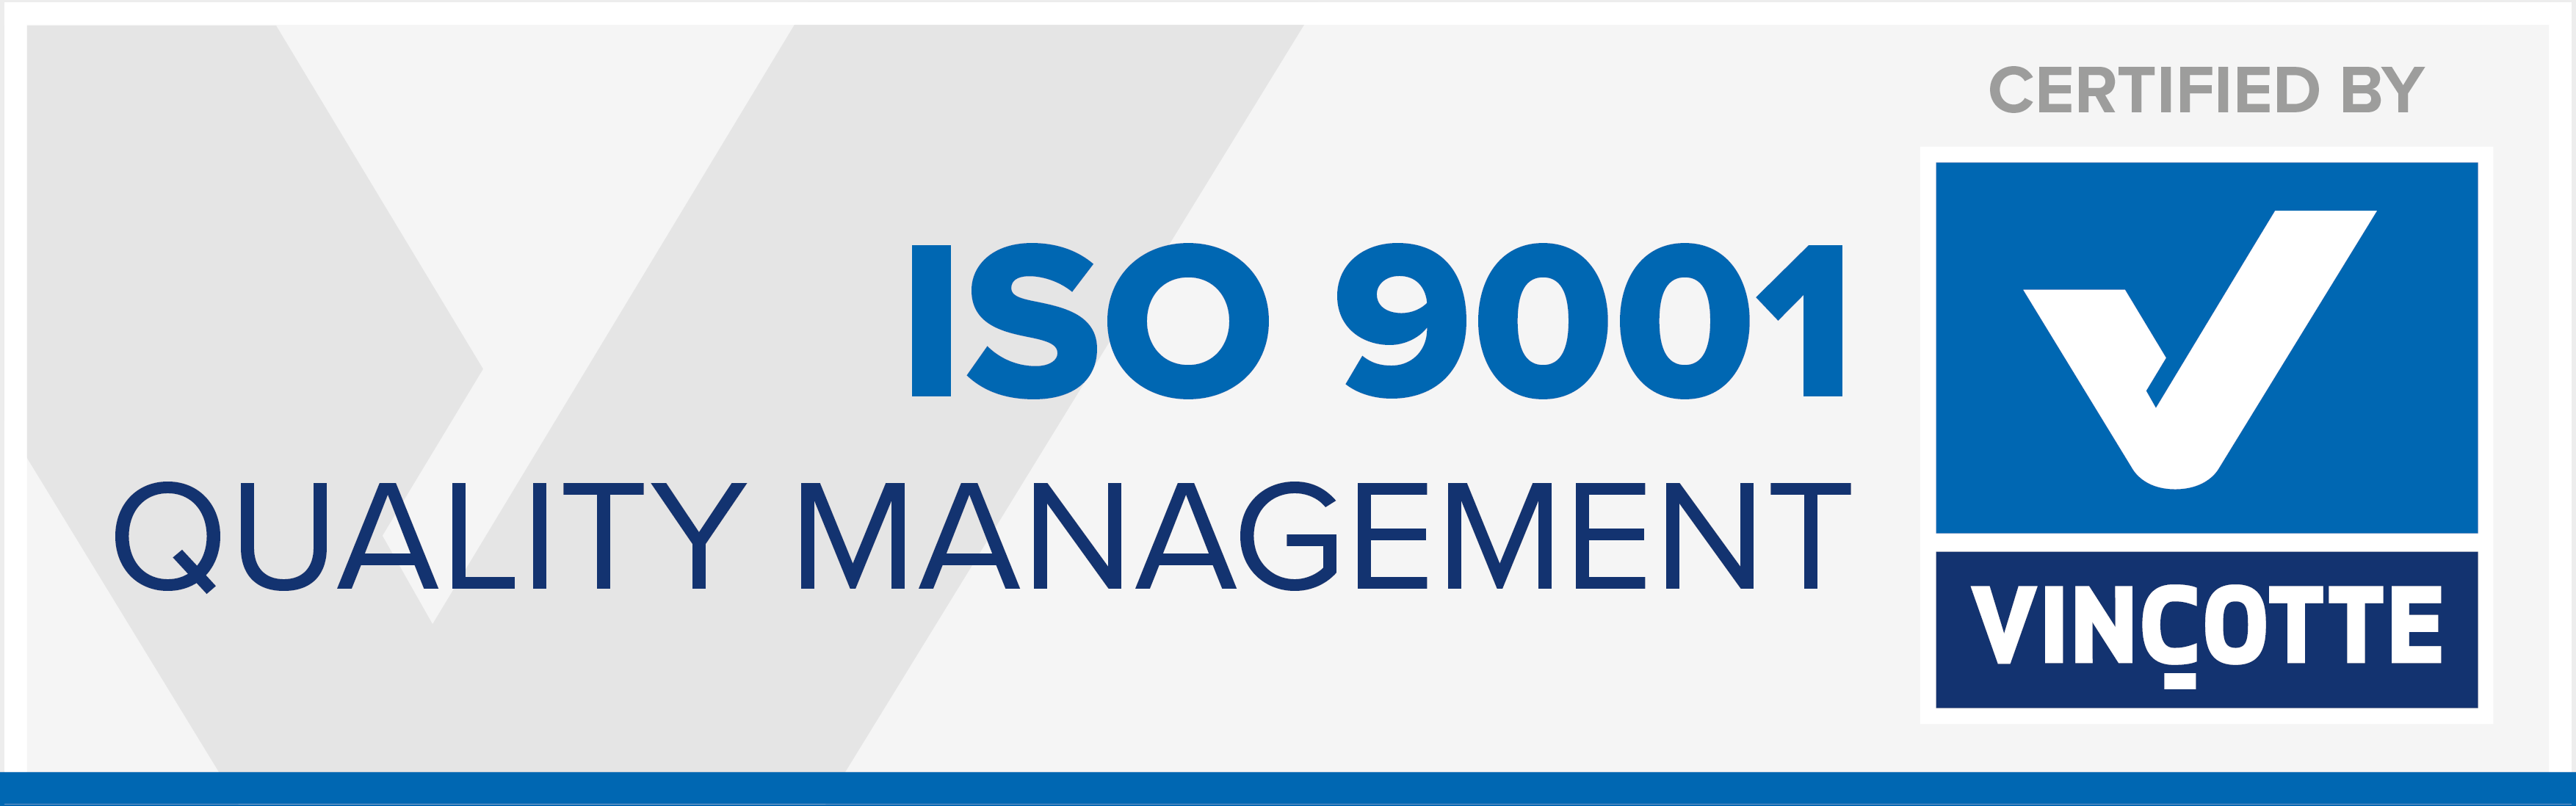 ISO-9001:2015 approval for Ingelbeen-Soete